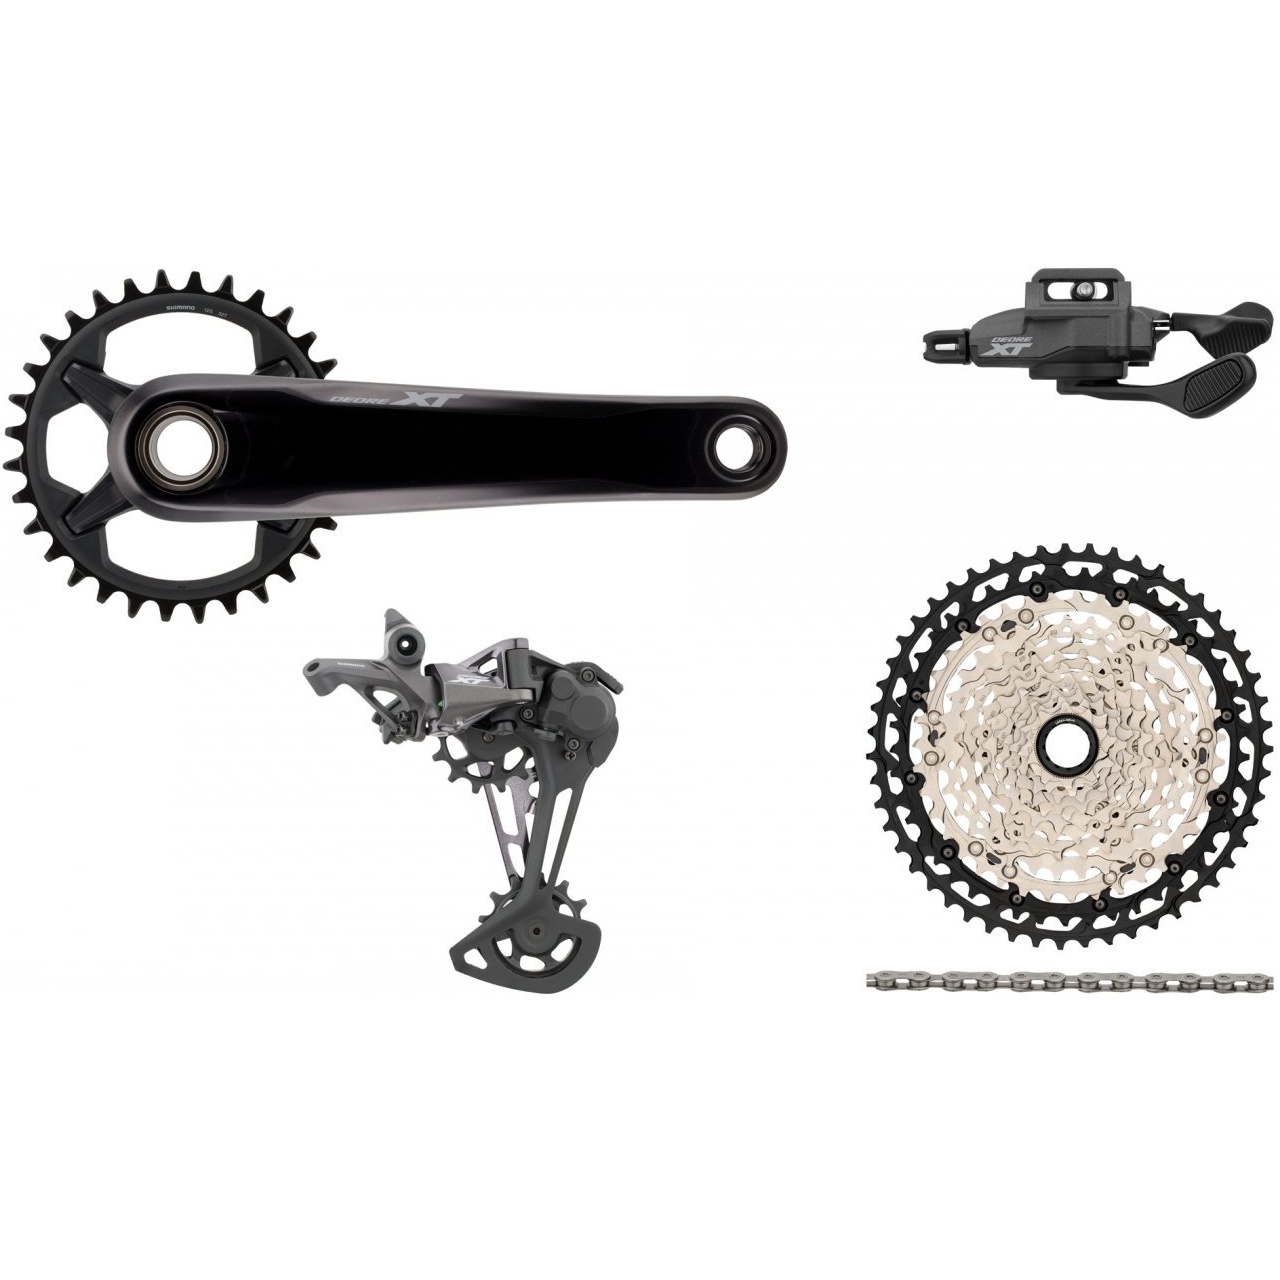 Shimano Components > Groupsets Shimano XT M8100 Boost 1 x 12 Drivetrain Groupset